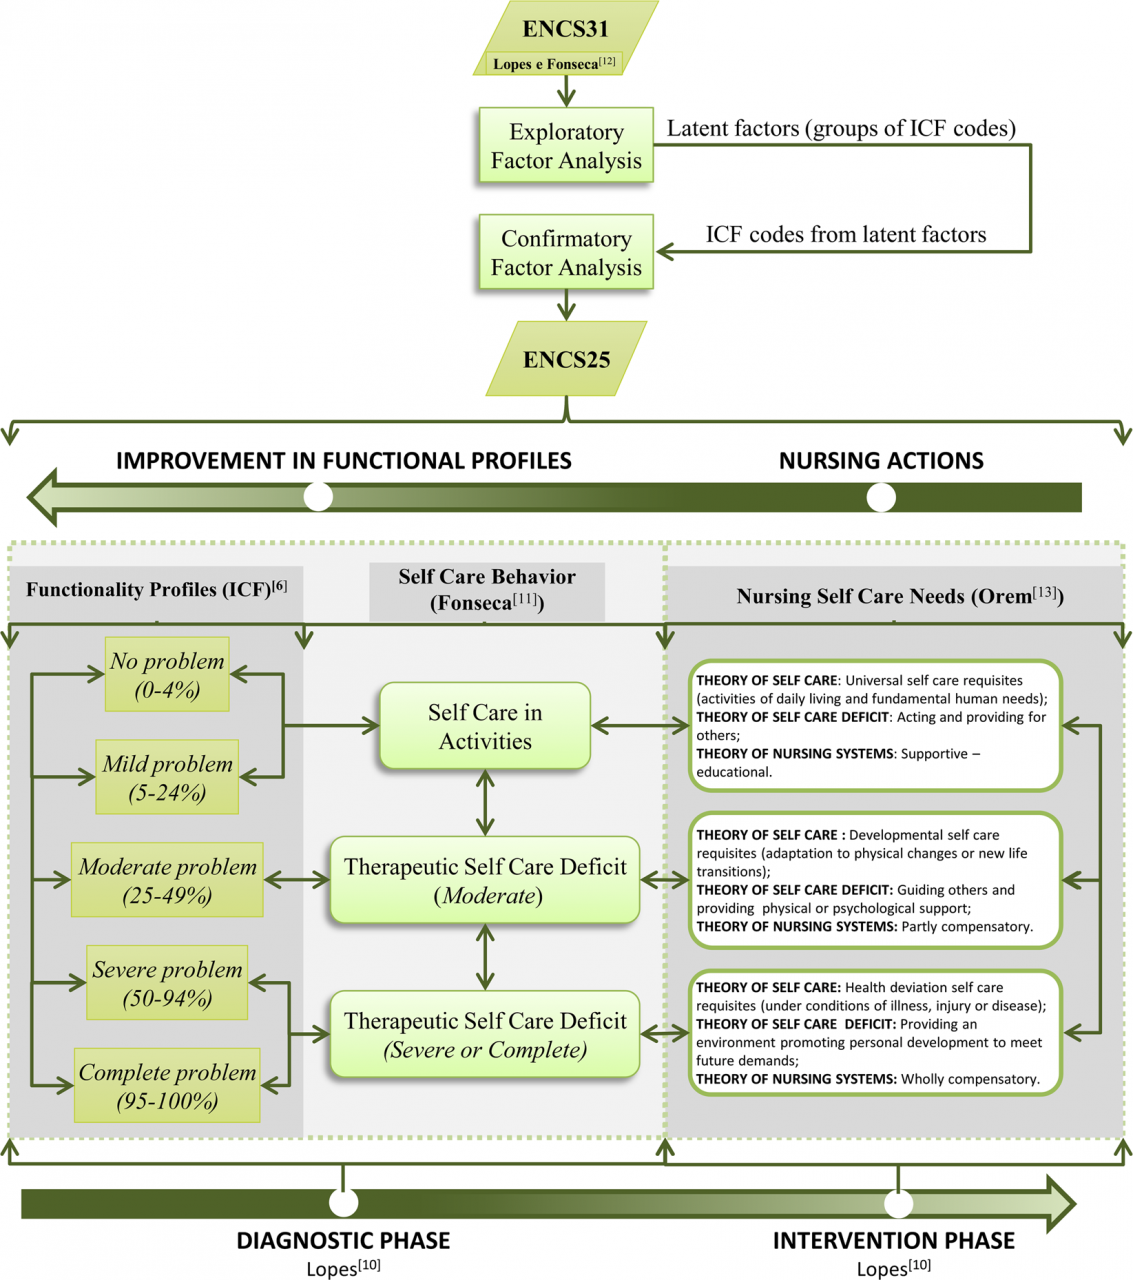 A Nursing Care Intervention Model for Elderly People to Ascertain General  Profiles of Functionality and Self Care Needs | Scientific Reports